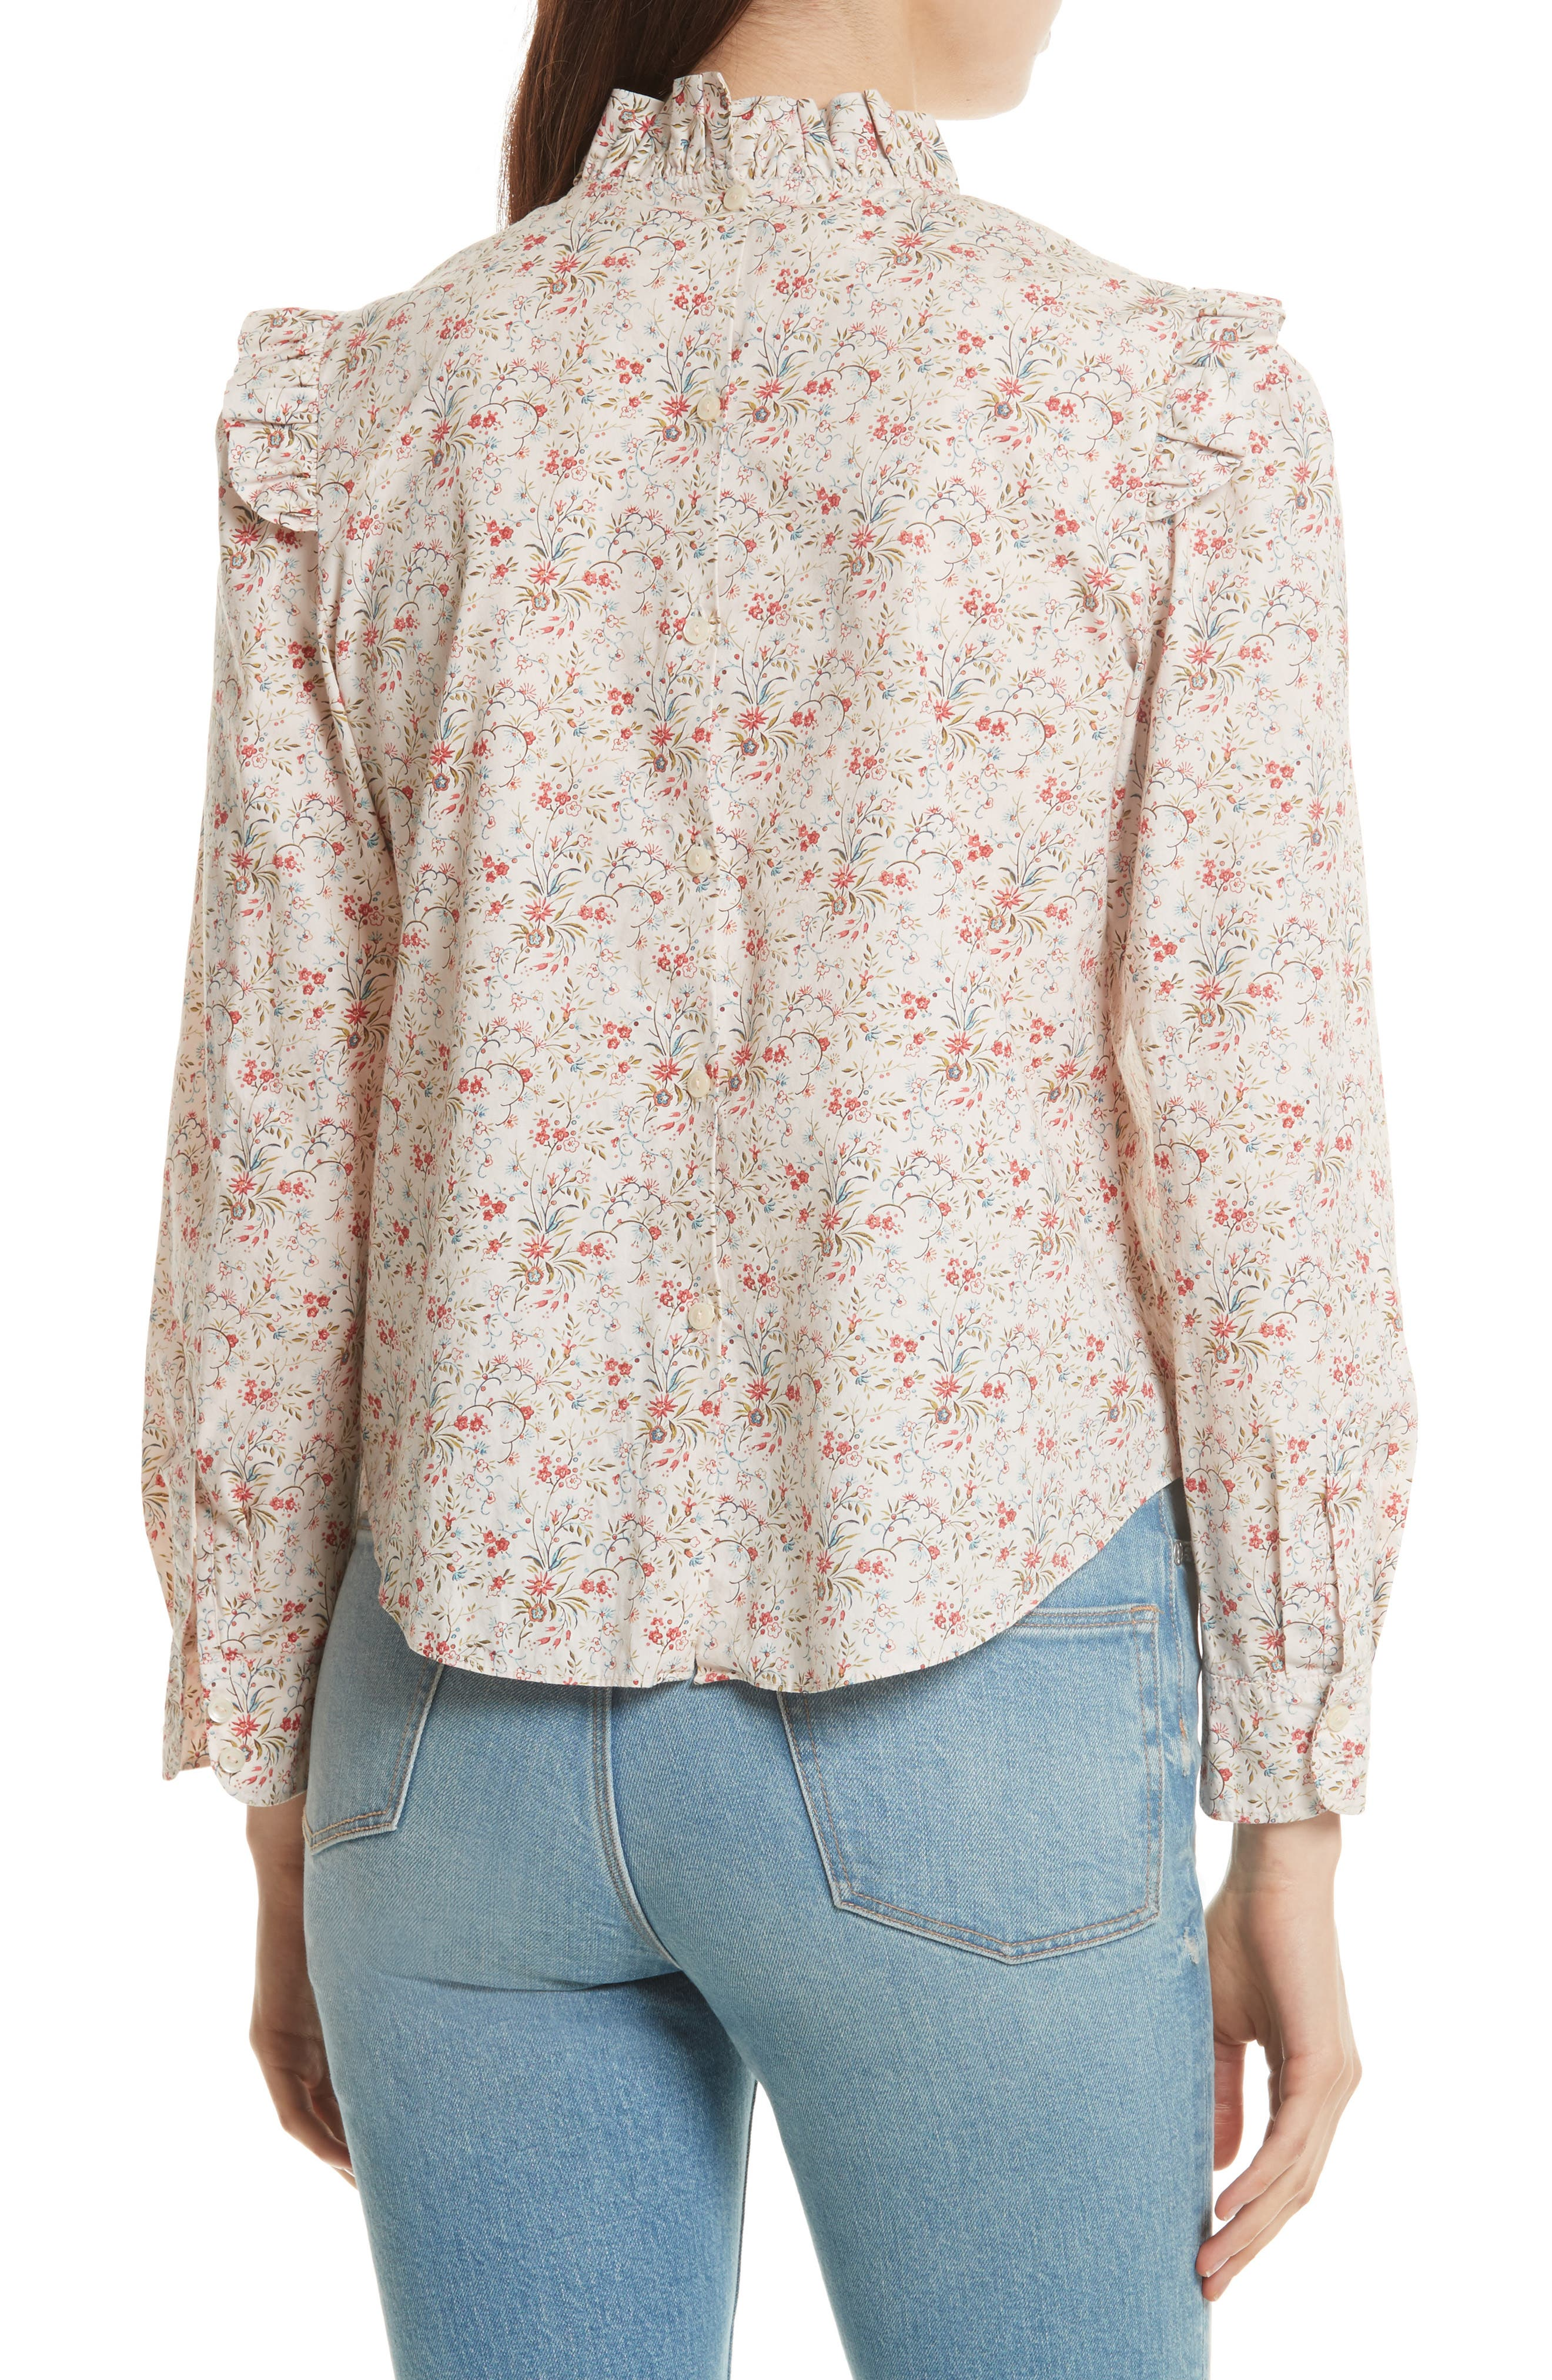 Brittany Floral Blouse,                             Alternate thumbnail 2, color,                             902